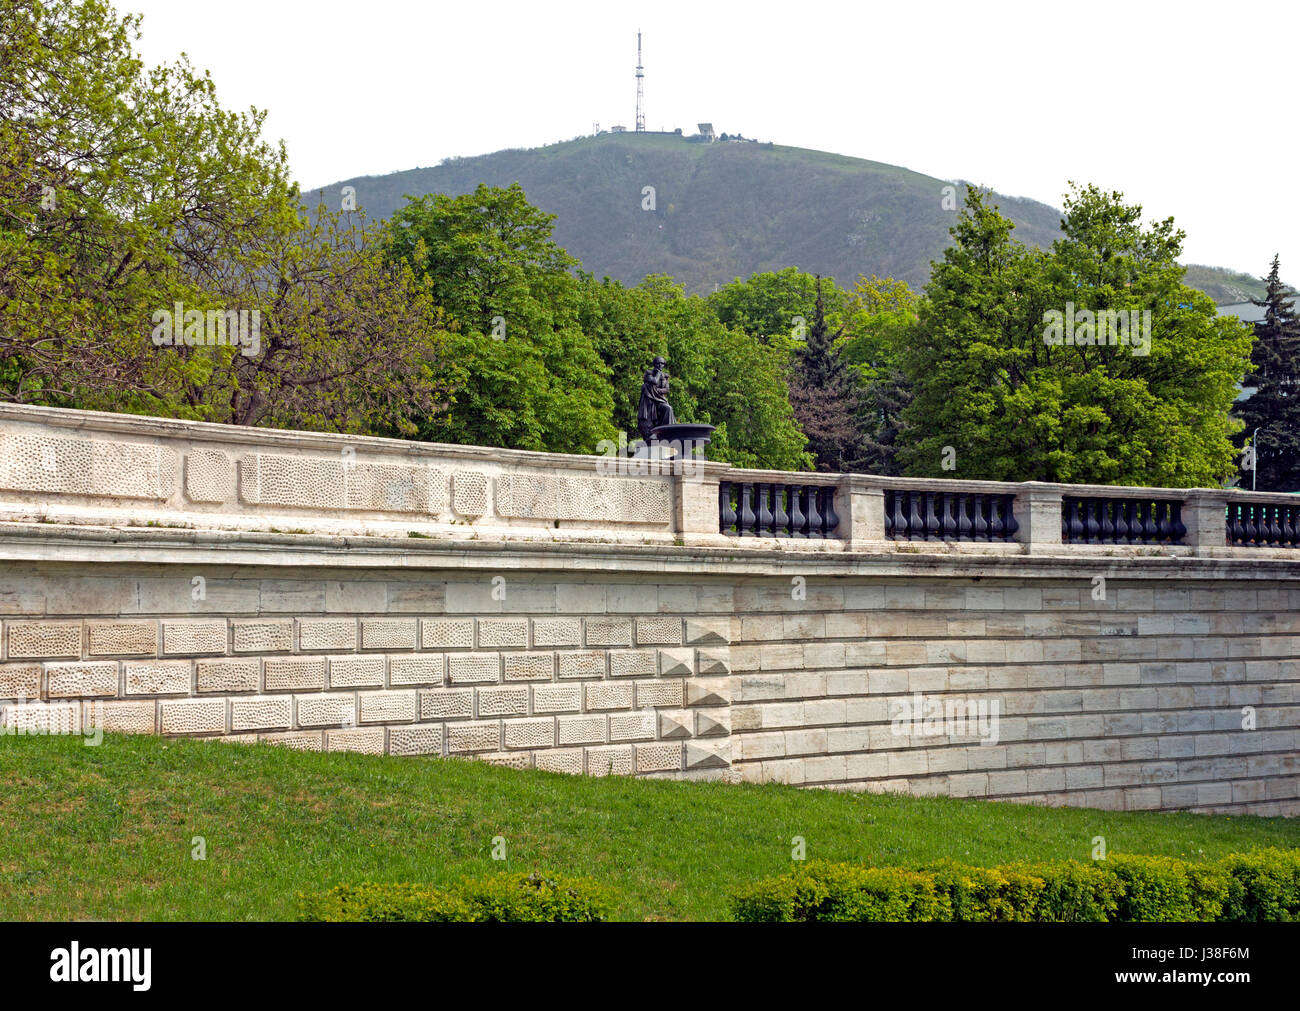 View Of The Beautiful Mount Mashuk and the ancient wall in Pyatigorsk,Northern Caucasus,Russia. - Stock Image